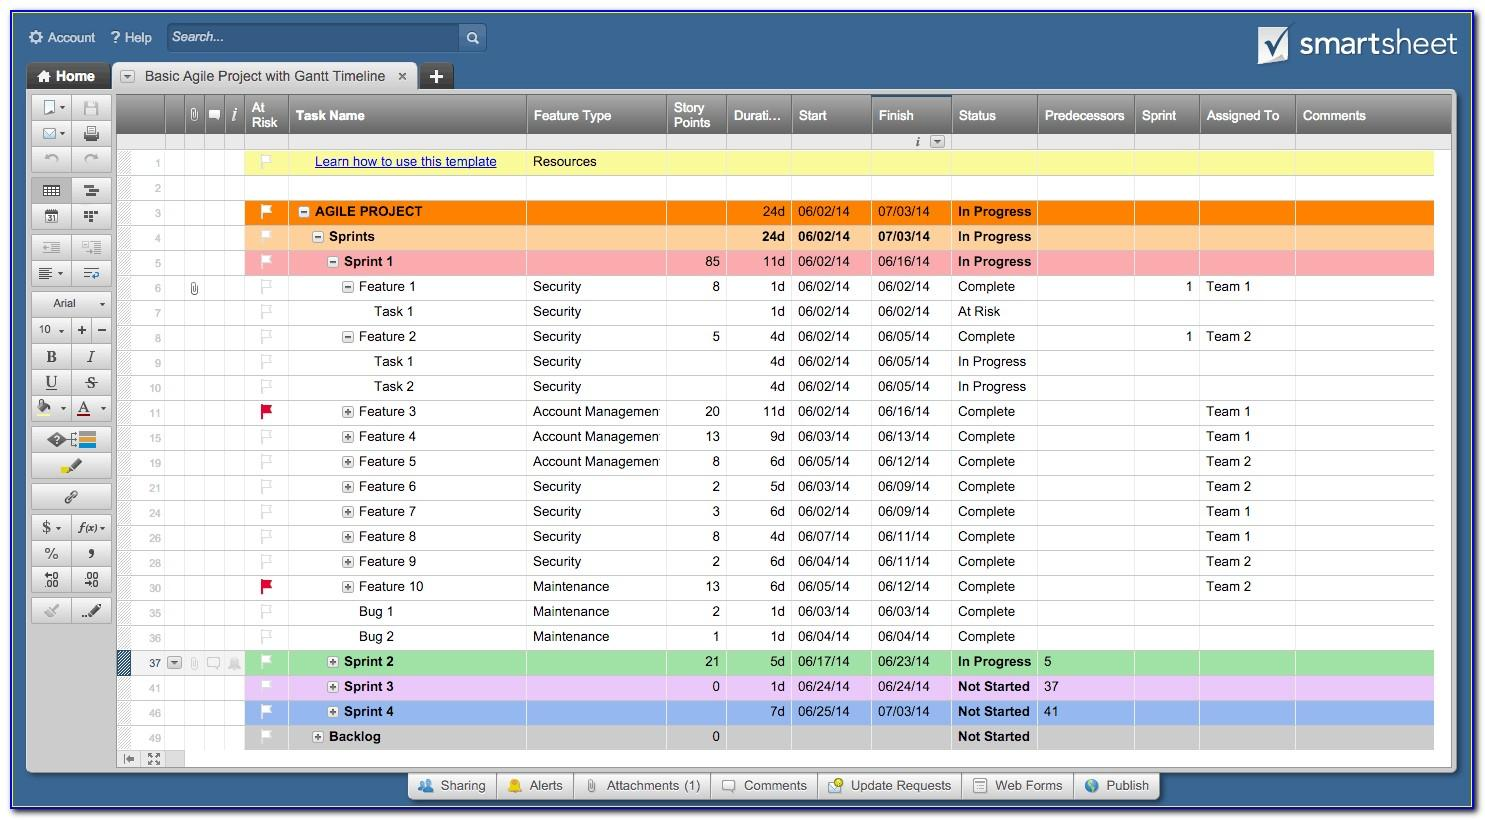 Free Template Smartsheet Project Management